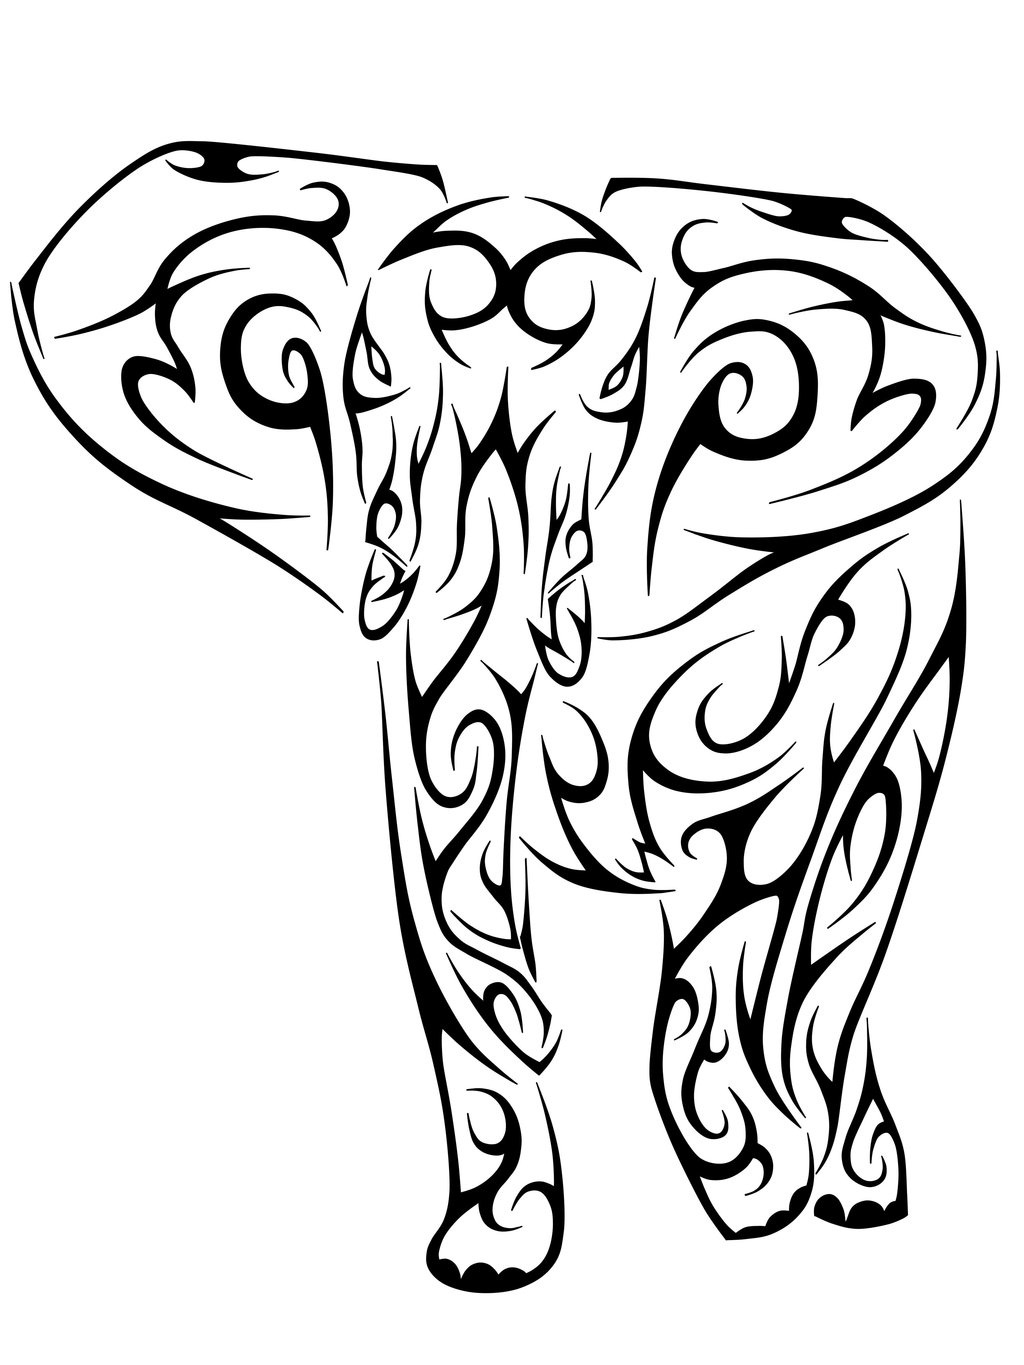 Tribal elephant tattoo designs - photo#7